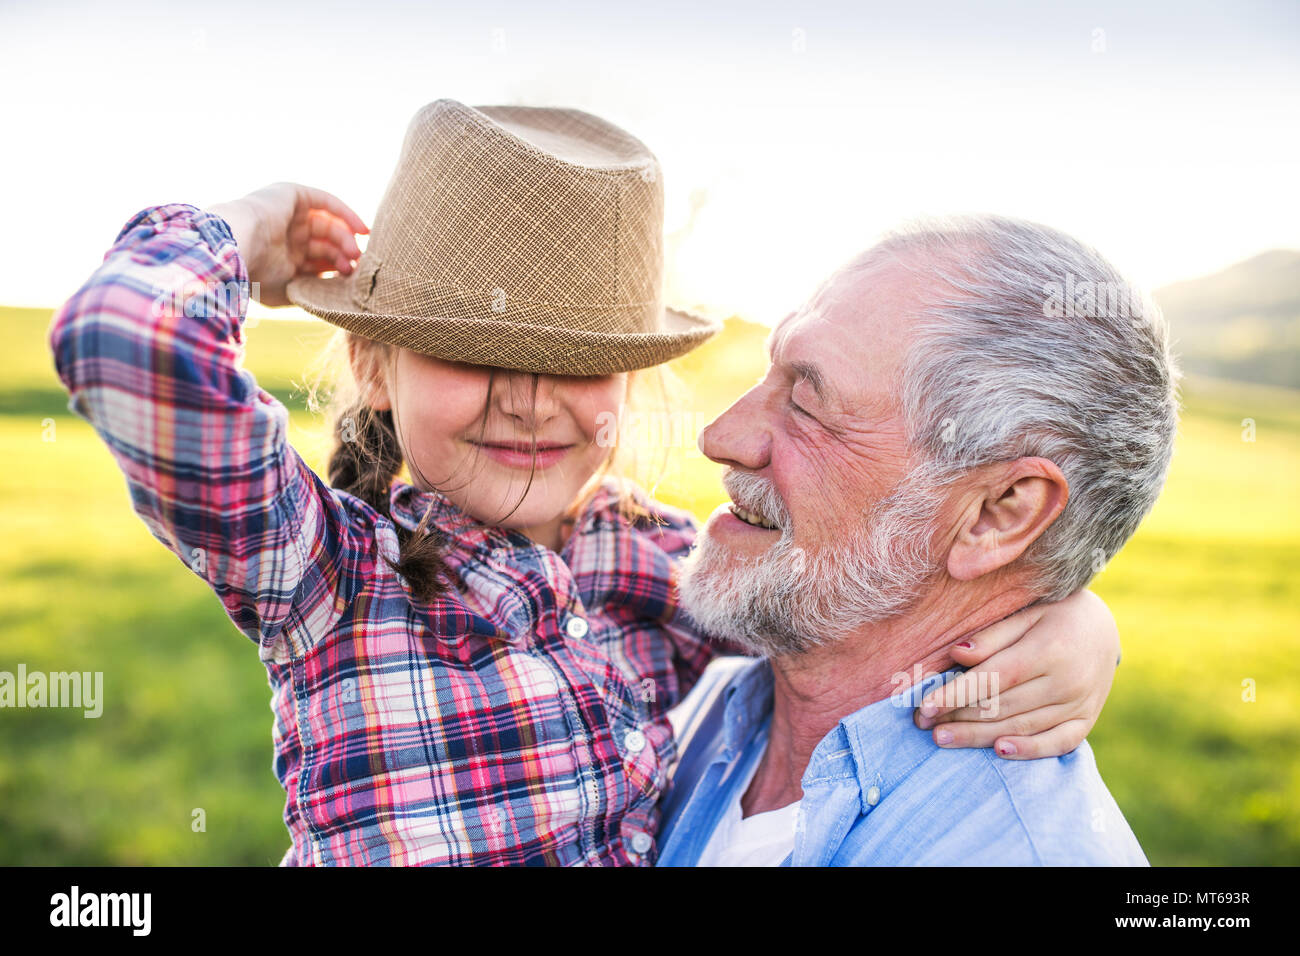 A small girl with grandfather outside in spring nature, having fun. - Stock Image